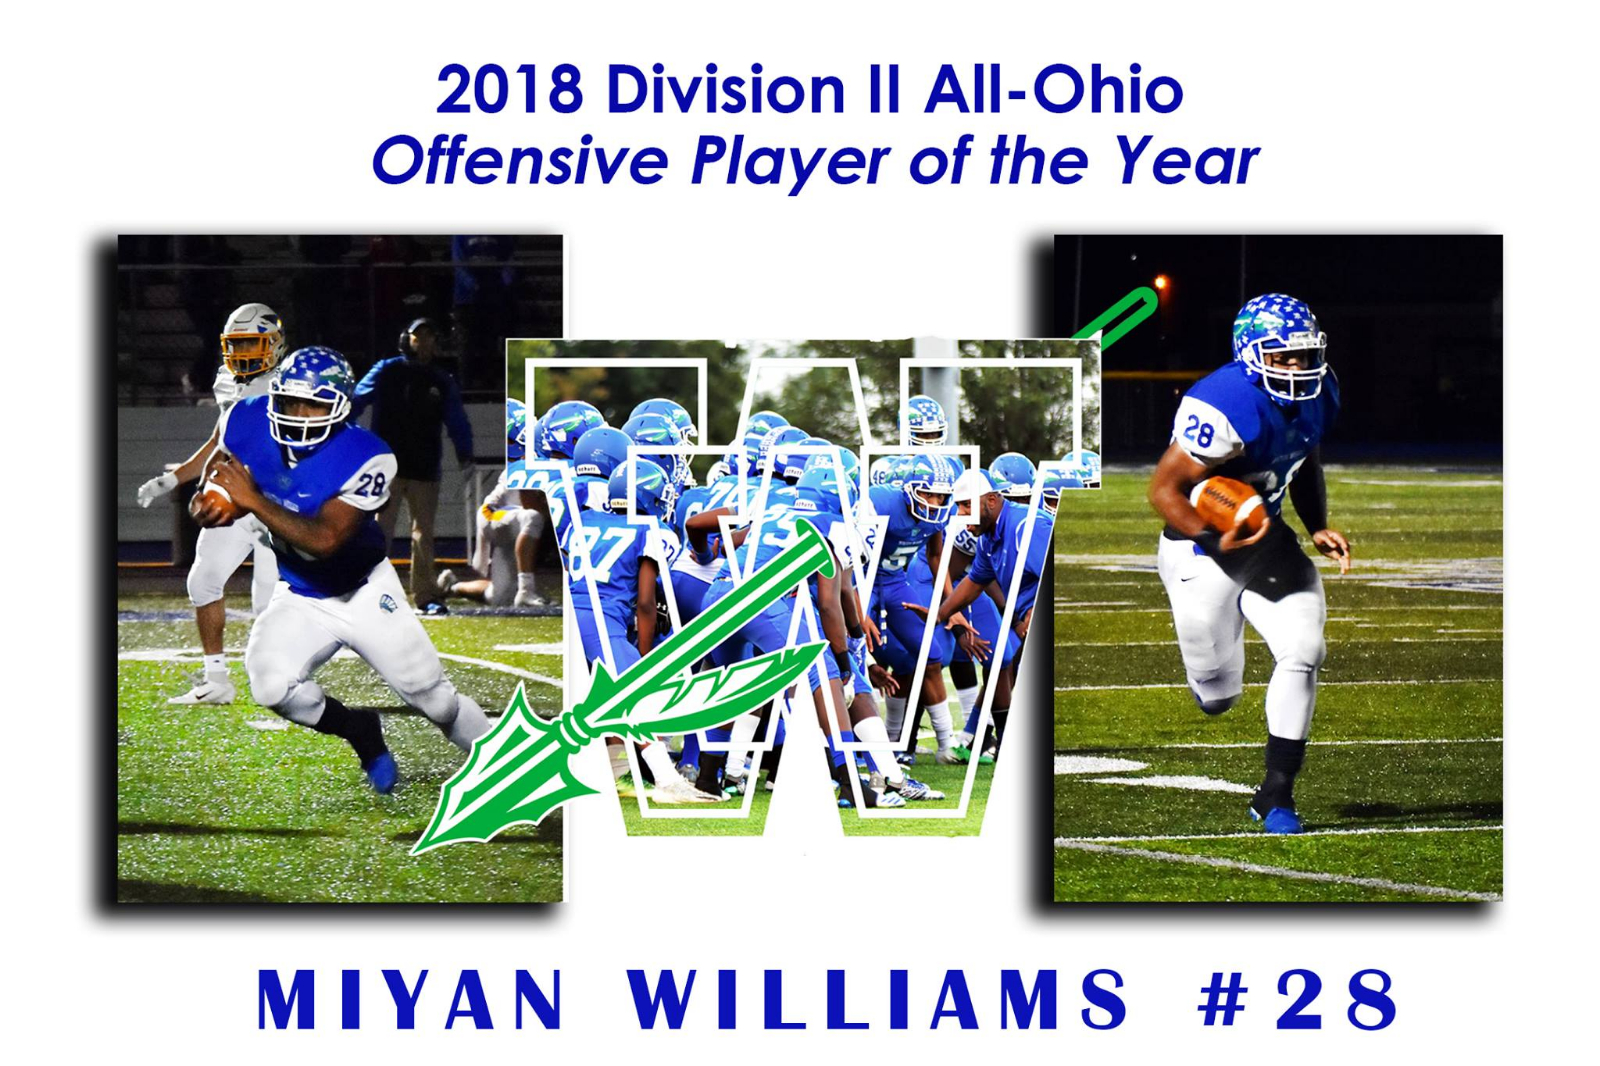 2018 Division II All-Ohio Offensive Player of the Year